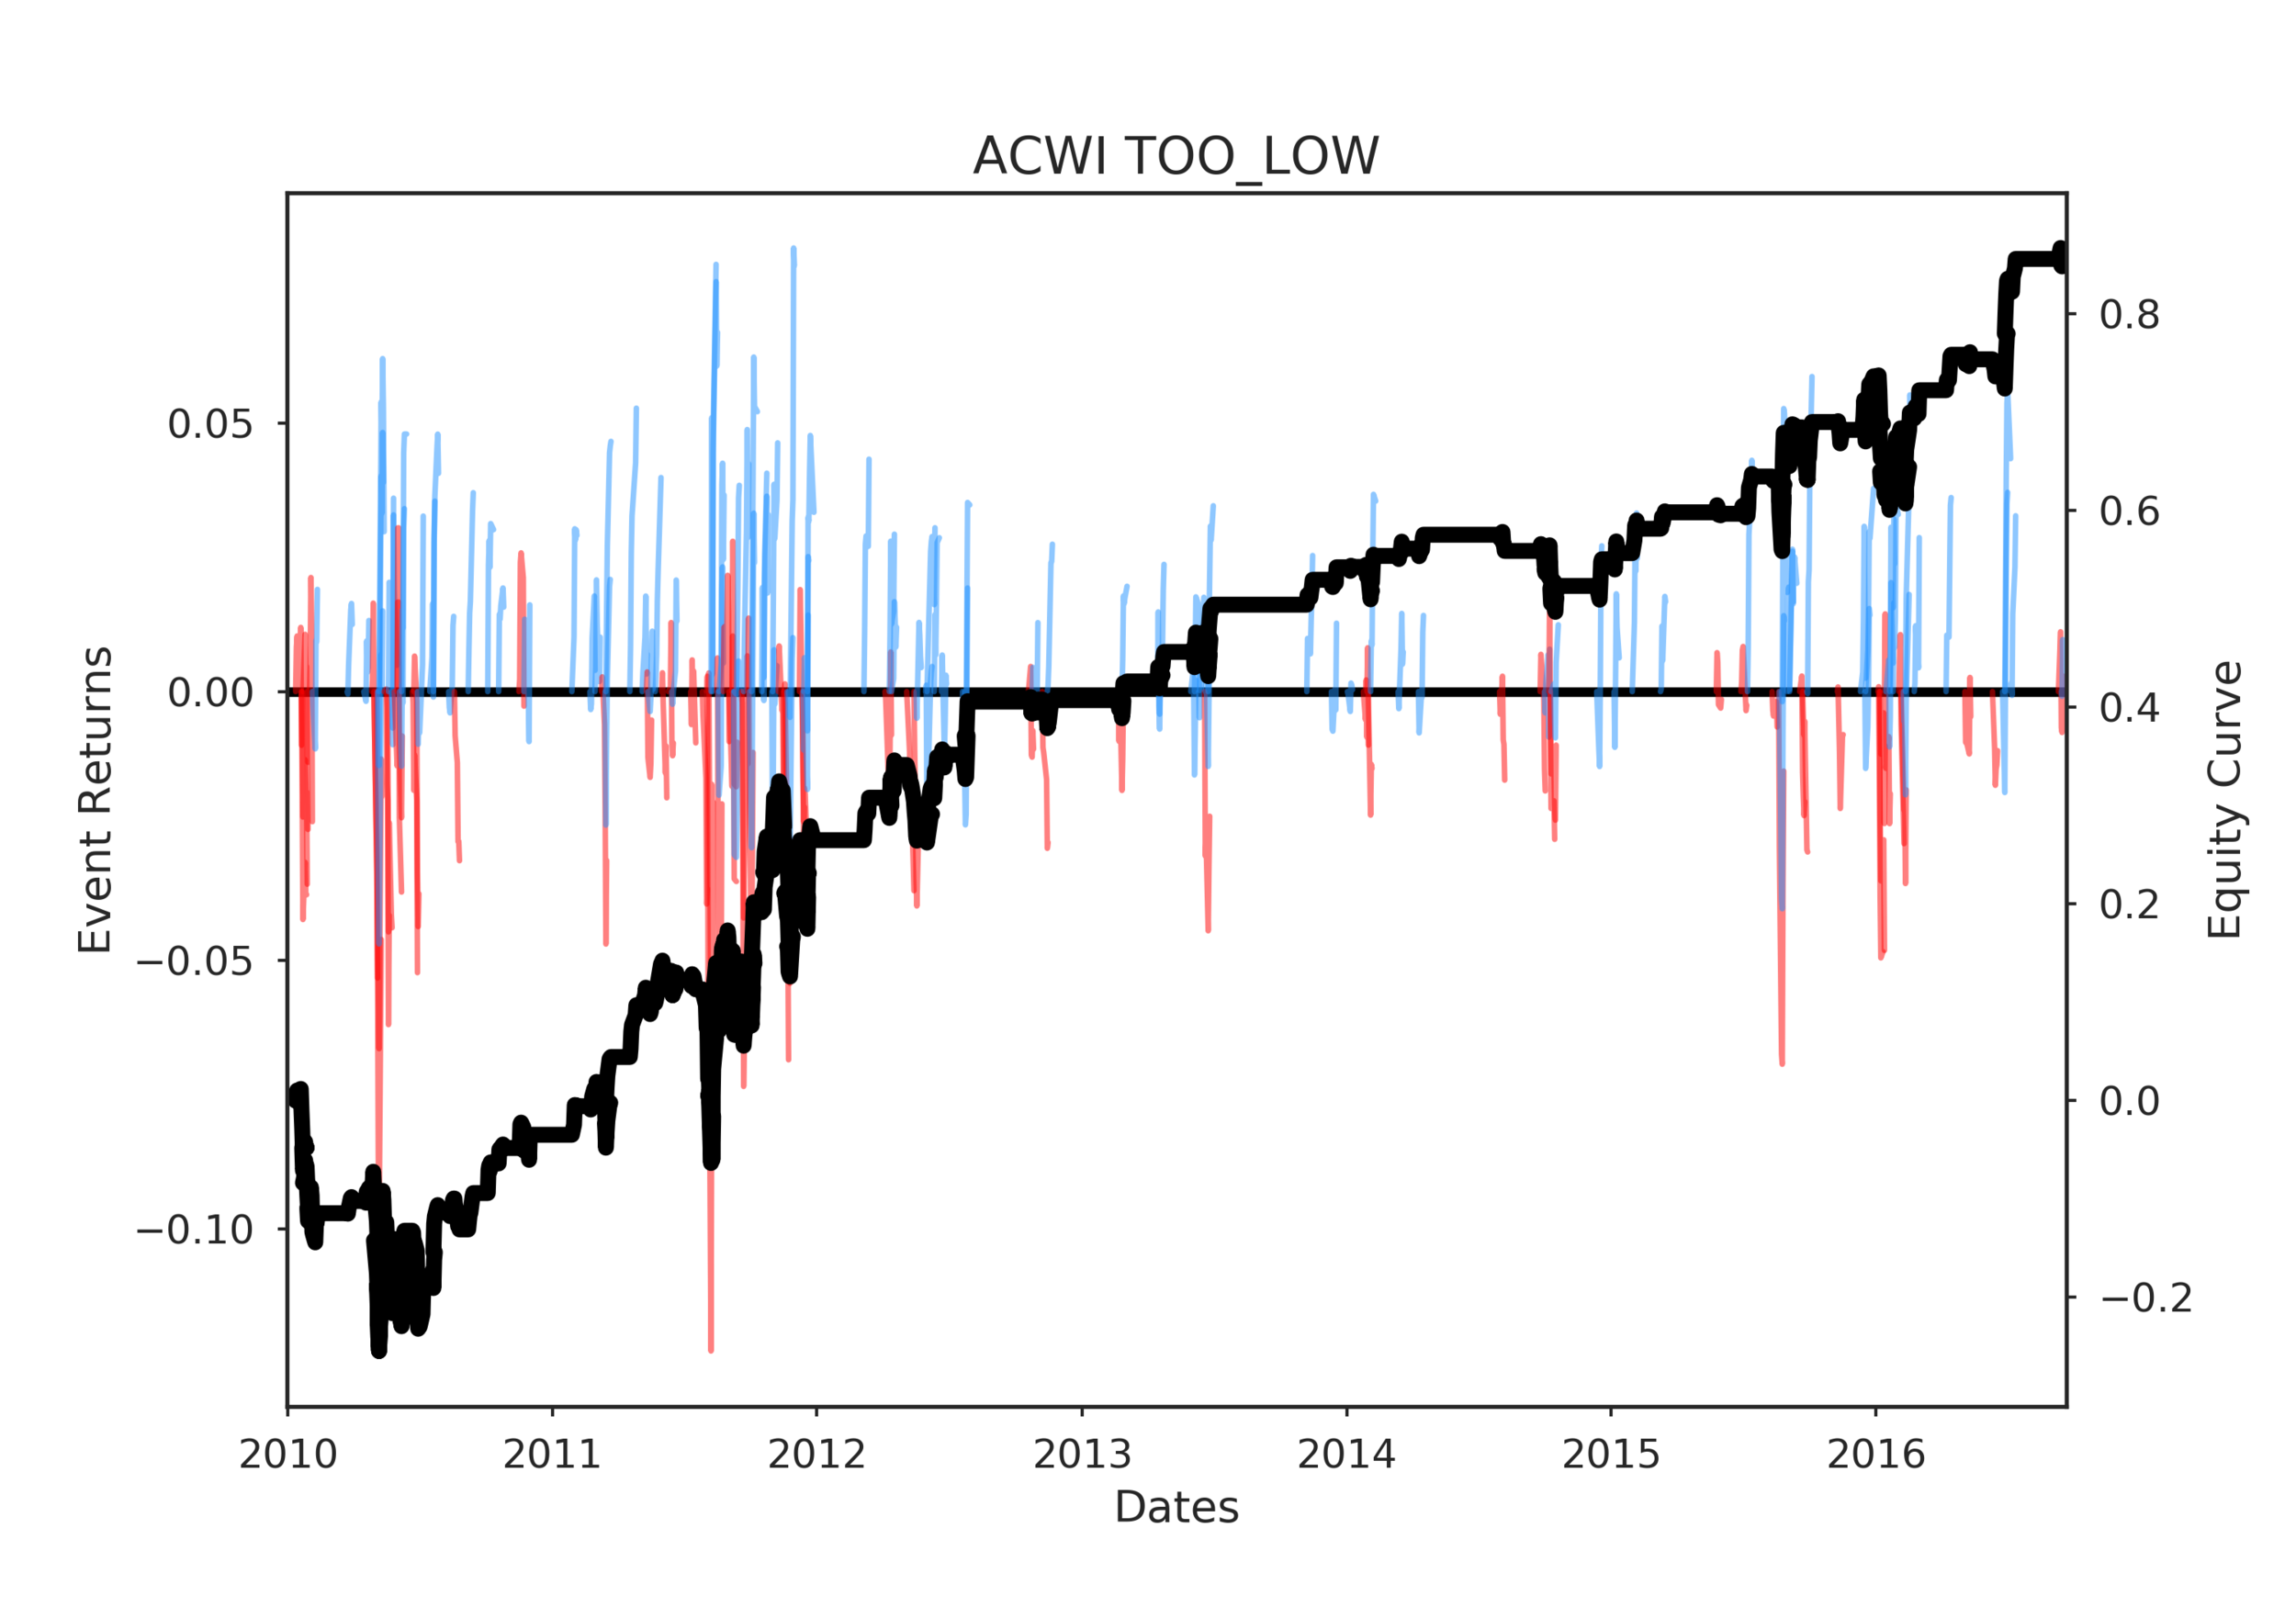 ACWI TOO_LOW post events timeline 2017-04-04 17:17:06.047170.png